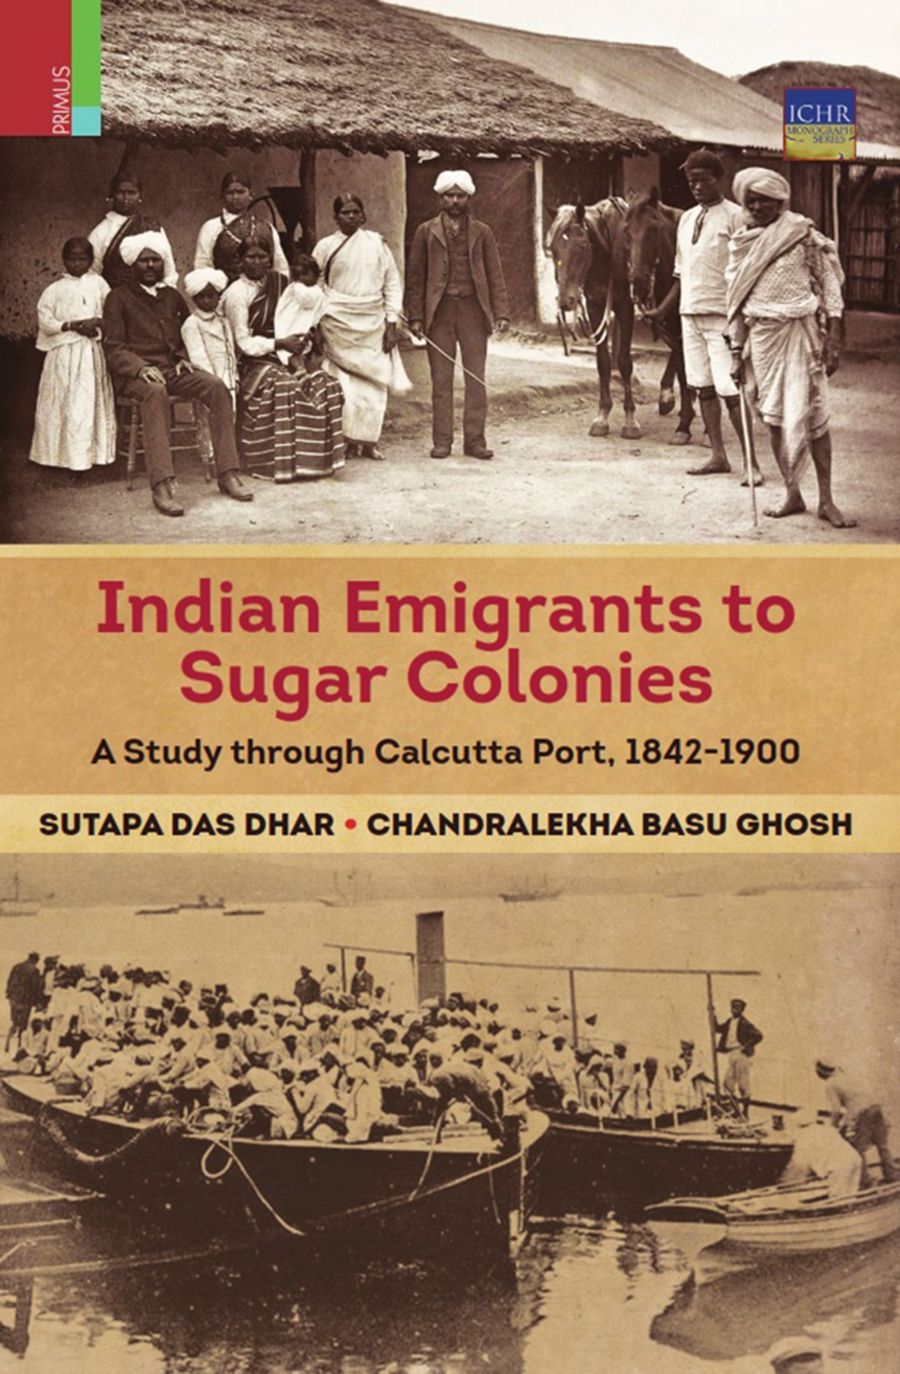 Indian Emigrants to Sugar Colonies